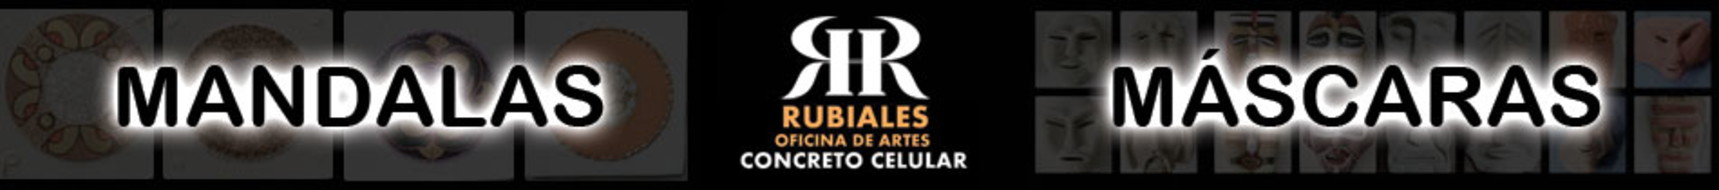 Rubiales Oficina de Artes